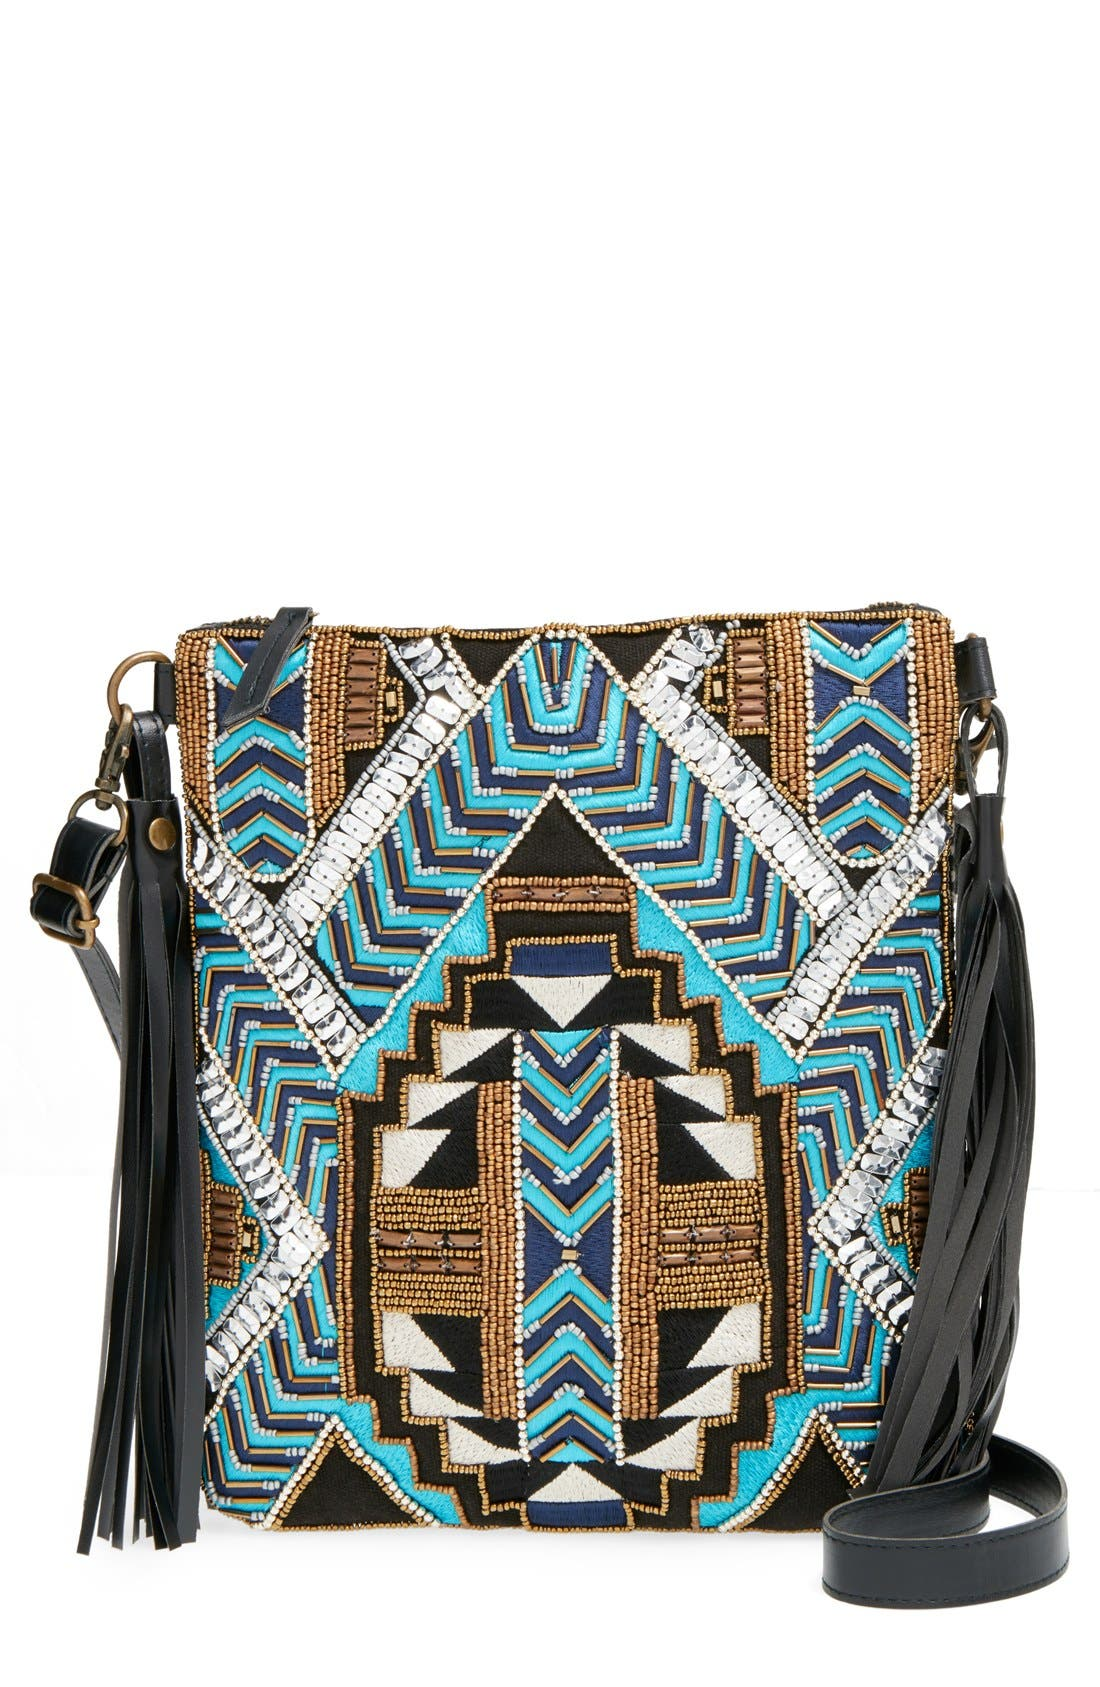 Main Image - Big Buddha Geo Beaded Crossbody Bag